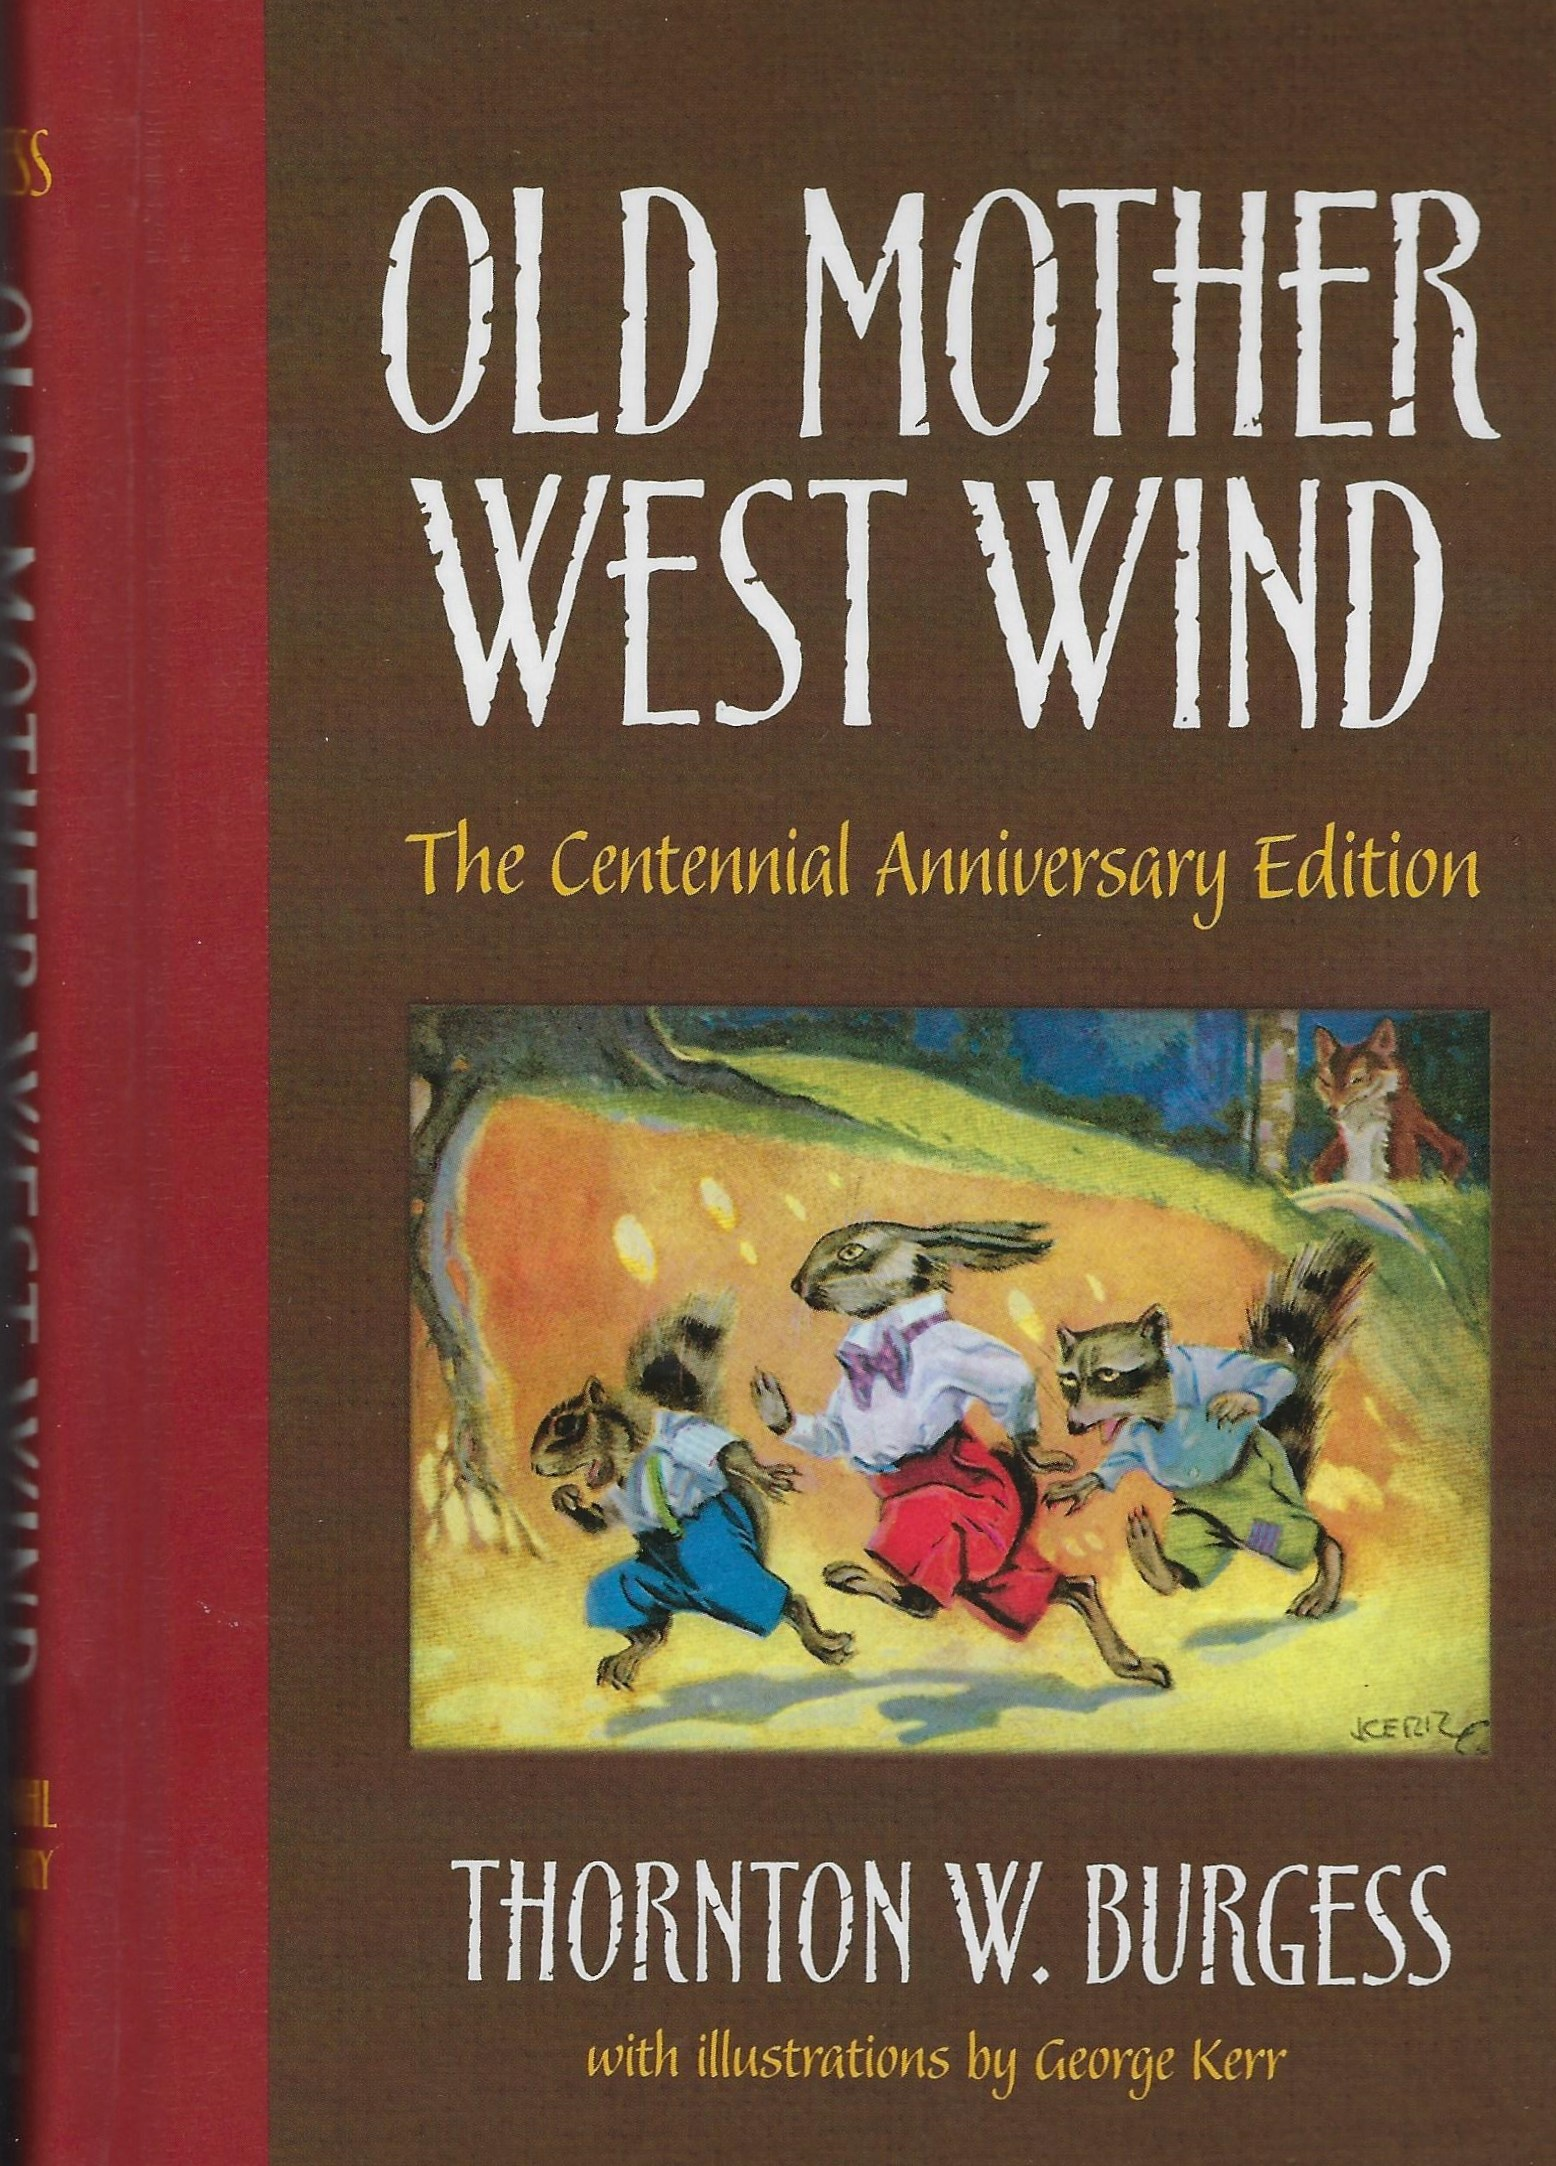 OLD MOTHER WEST WIND CENTENNIAL EDITION Thornton W Burgess